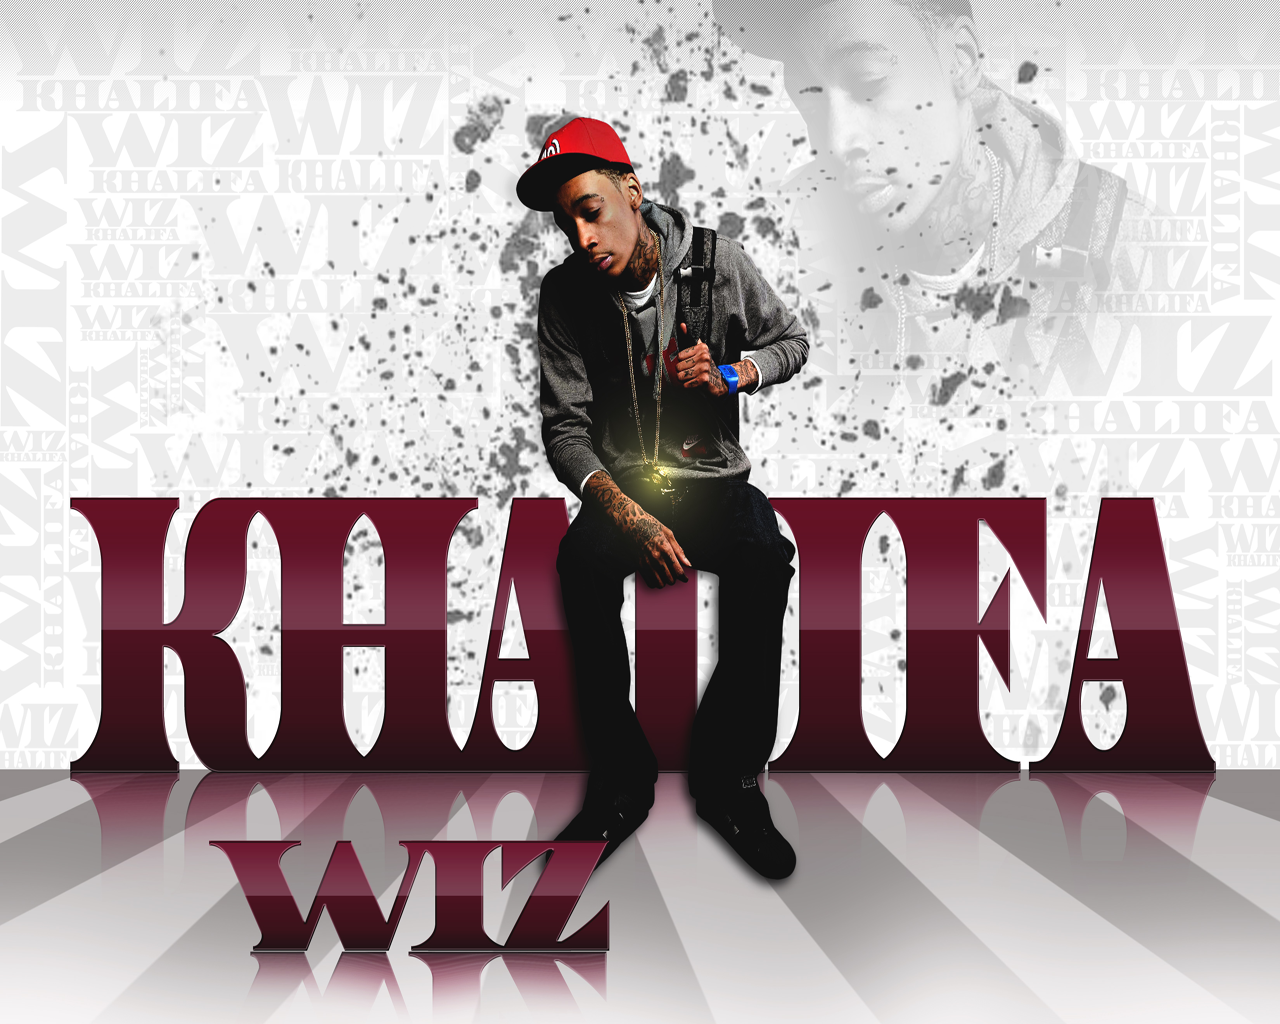 Wiz Khalifa Taylor Gang Die Wallpaper 1280x1024 Full HD Wallpapers 1280x1024